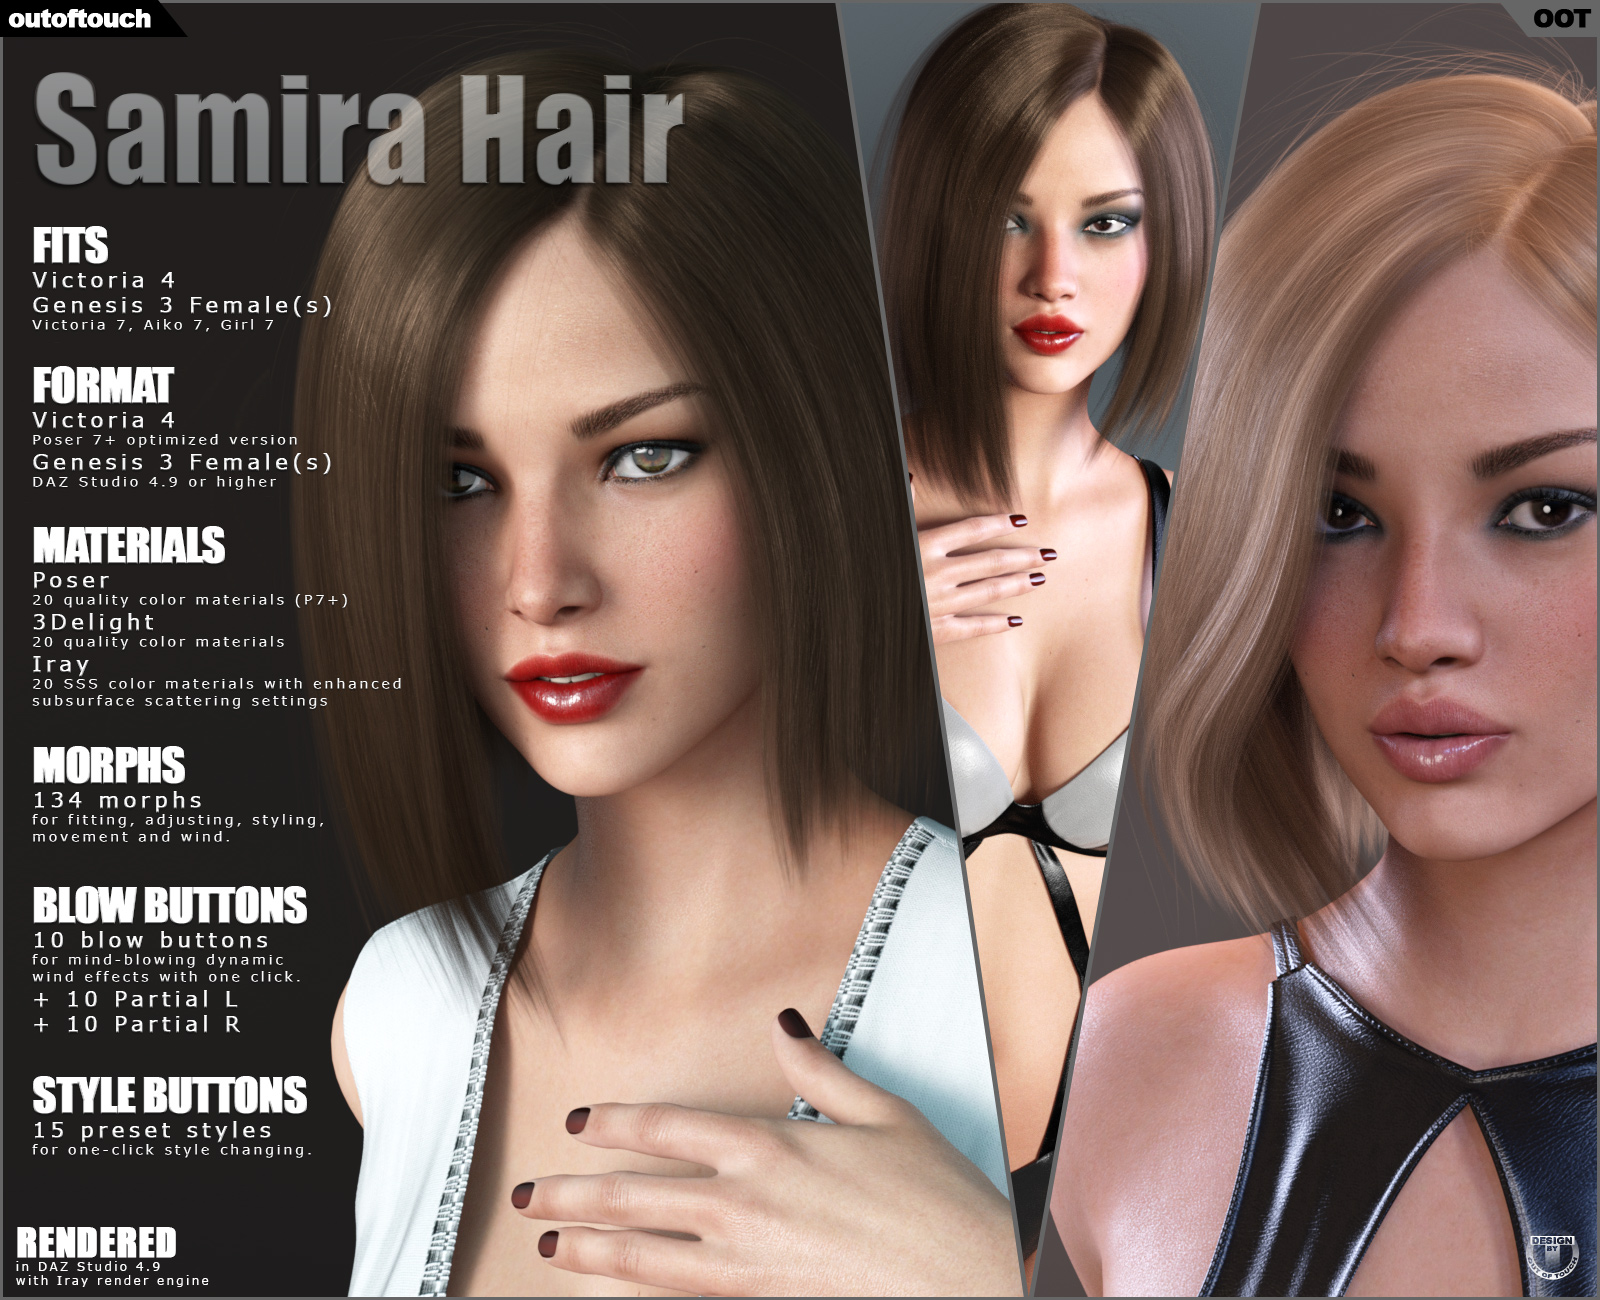 Samira Bob Hair for Victoria 4 and Genesis 3 Females